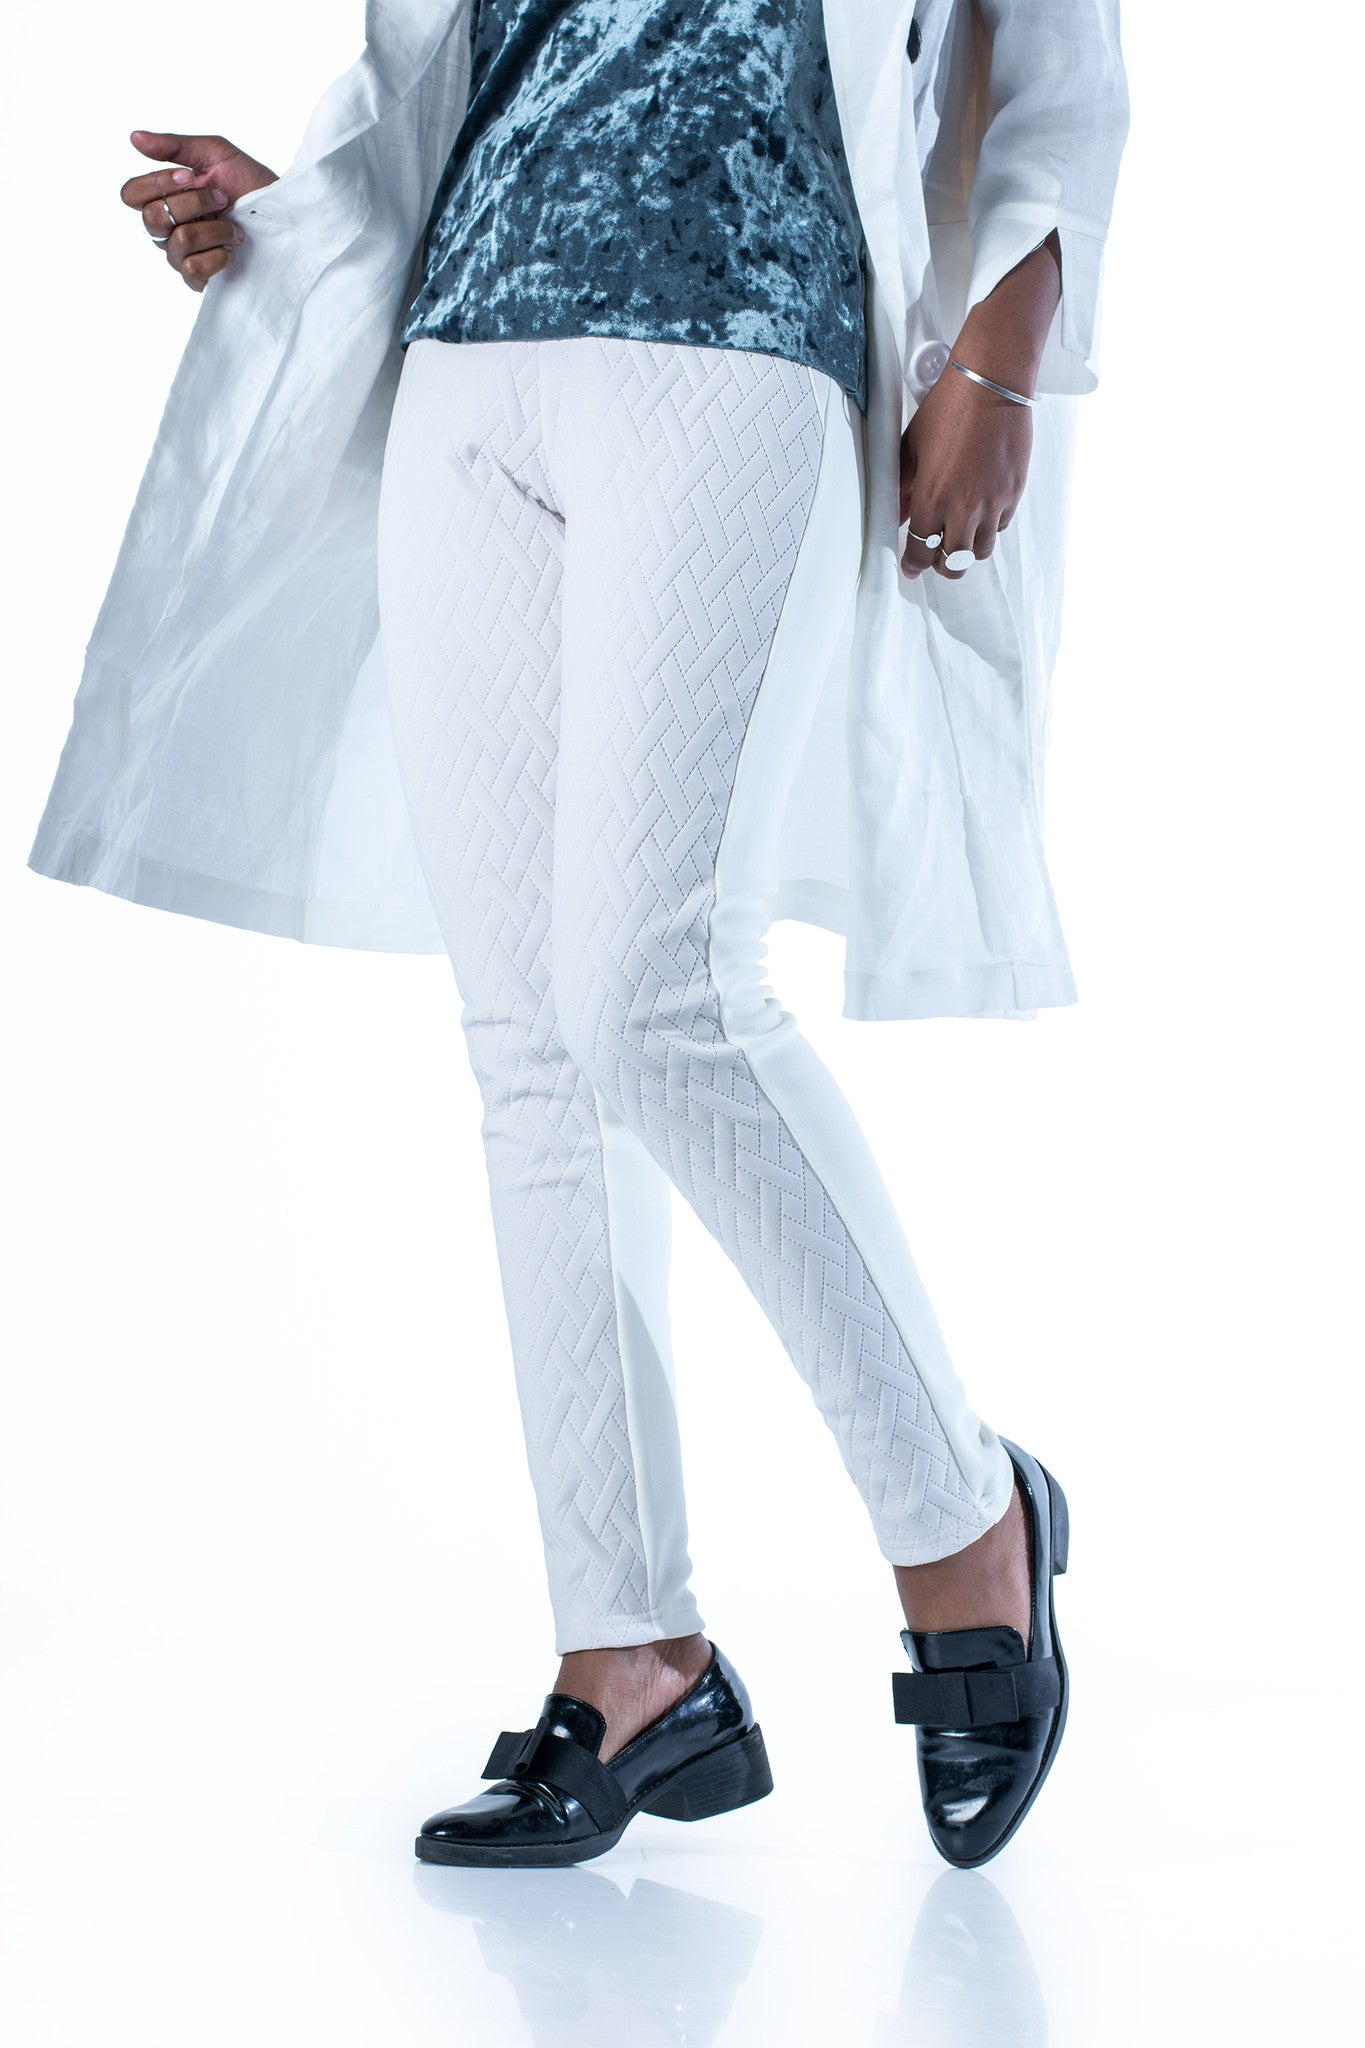 Shotgun Quilted Leggings - White